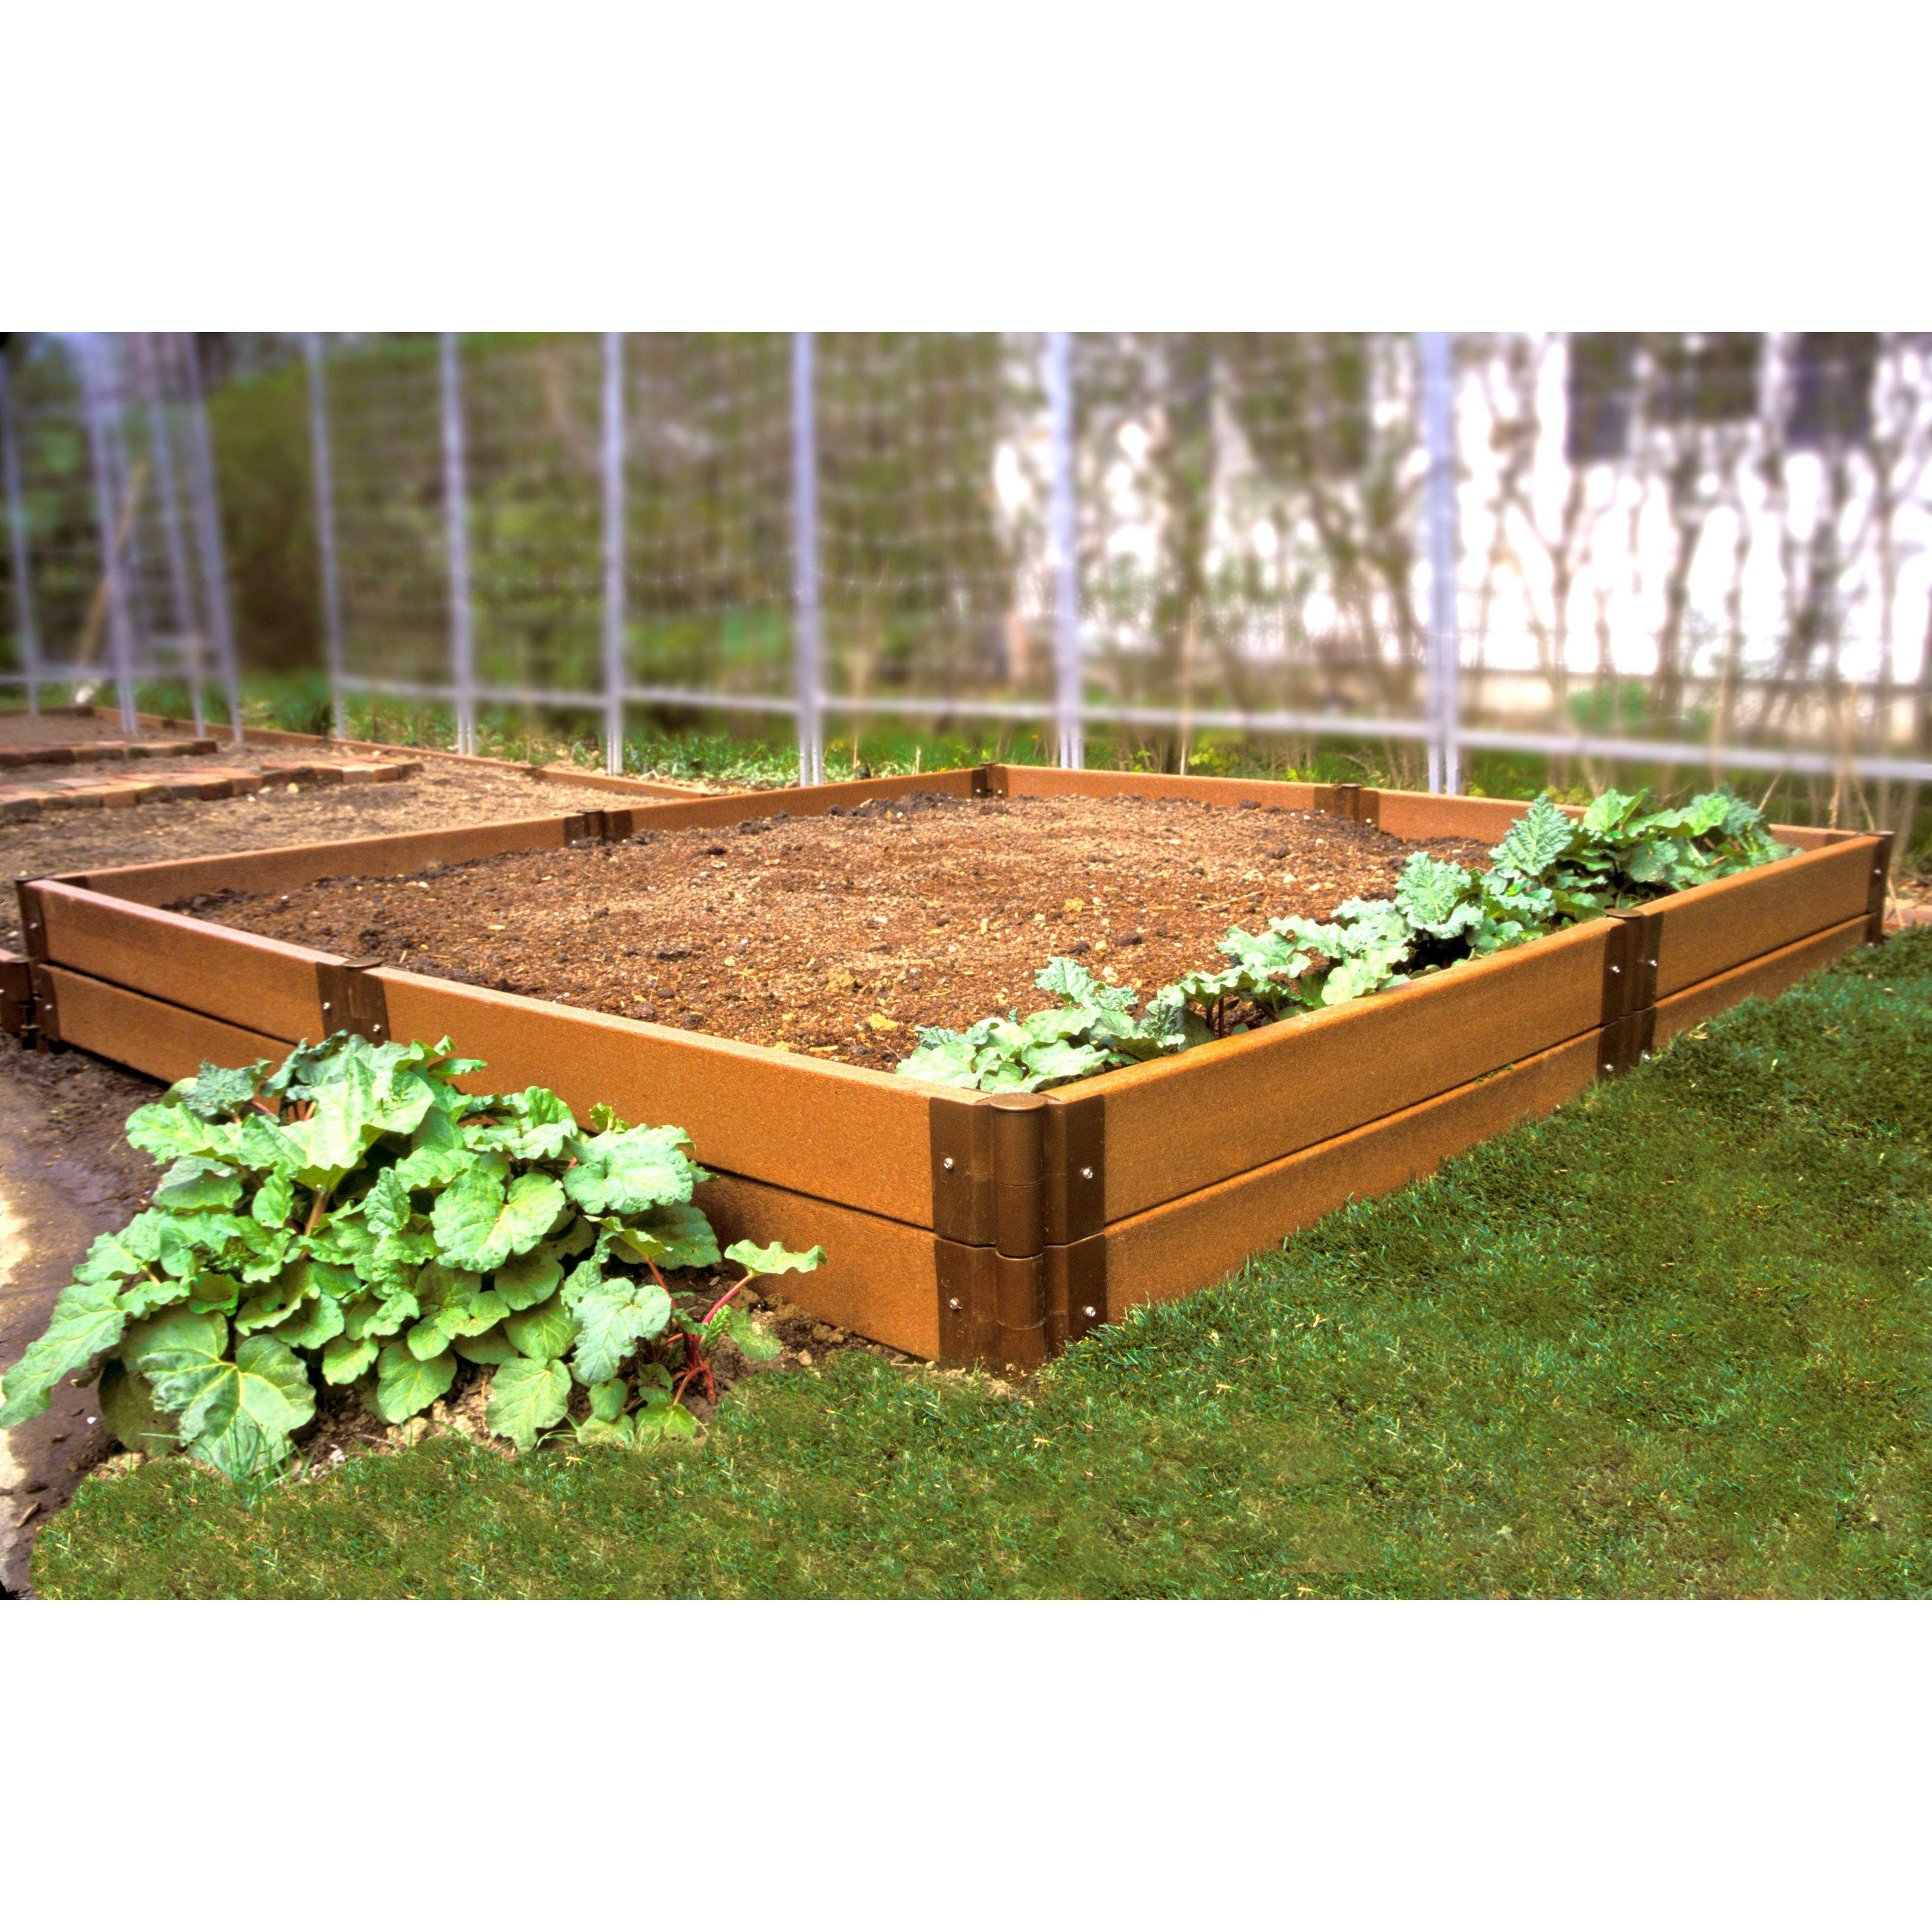 Have To Have It Frame It All 8 X 8 Recycled Resin Raised Garden Bed 399 99 Vegetable Garden Raised Beds Raised Vegetable Gardens Raised Garden